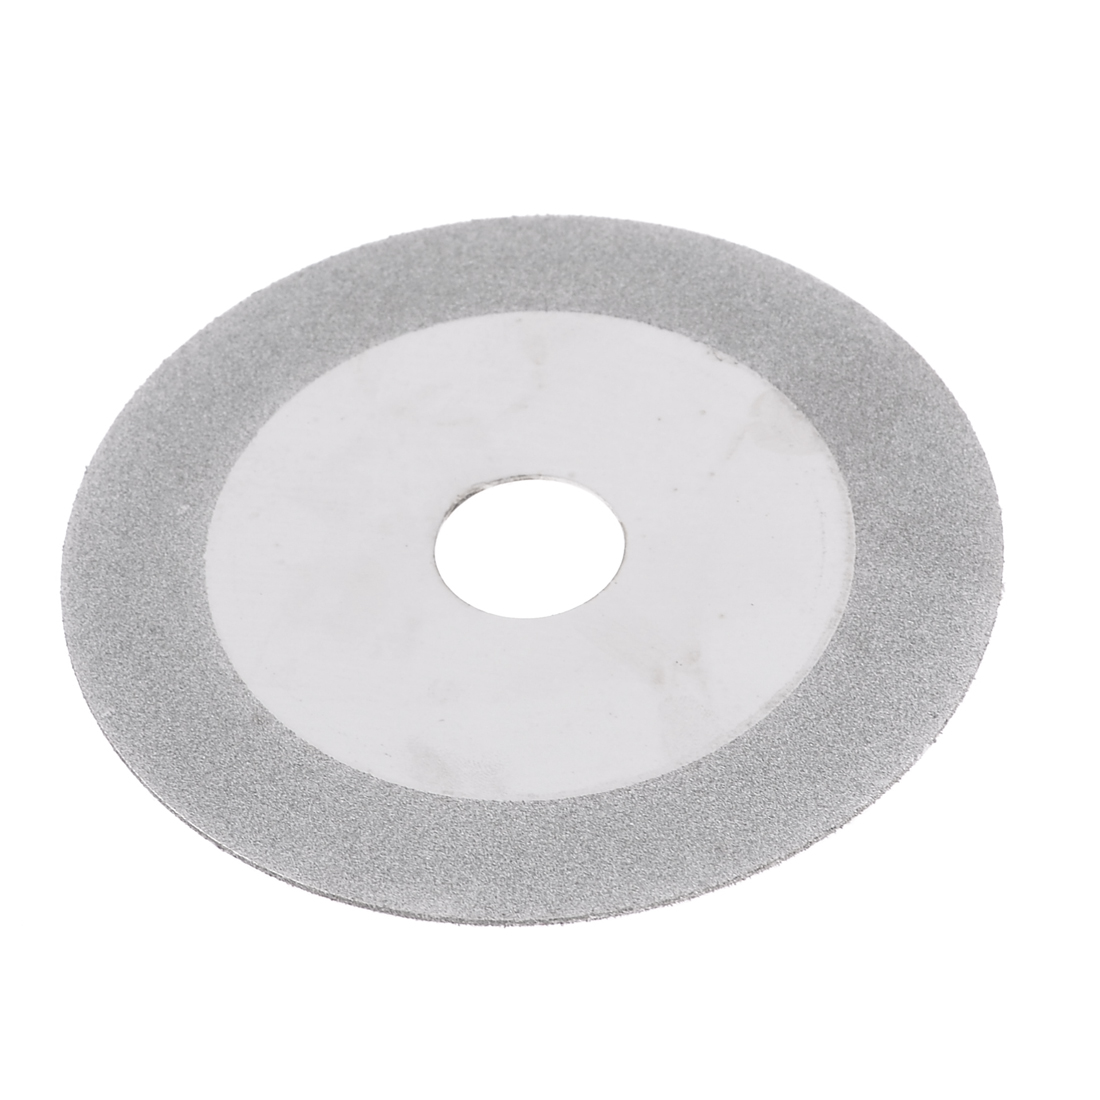 UXCELL 100Mm X 20Mm X 0.8Mm Double Side Glass Diamond Saw Slice Cutting Disc